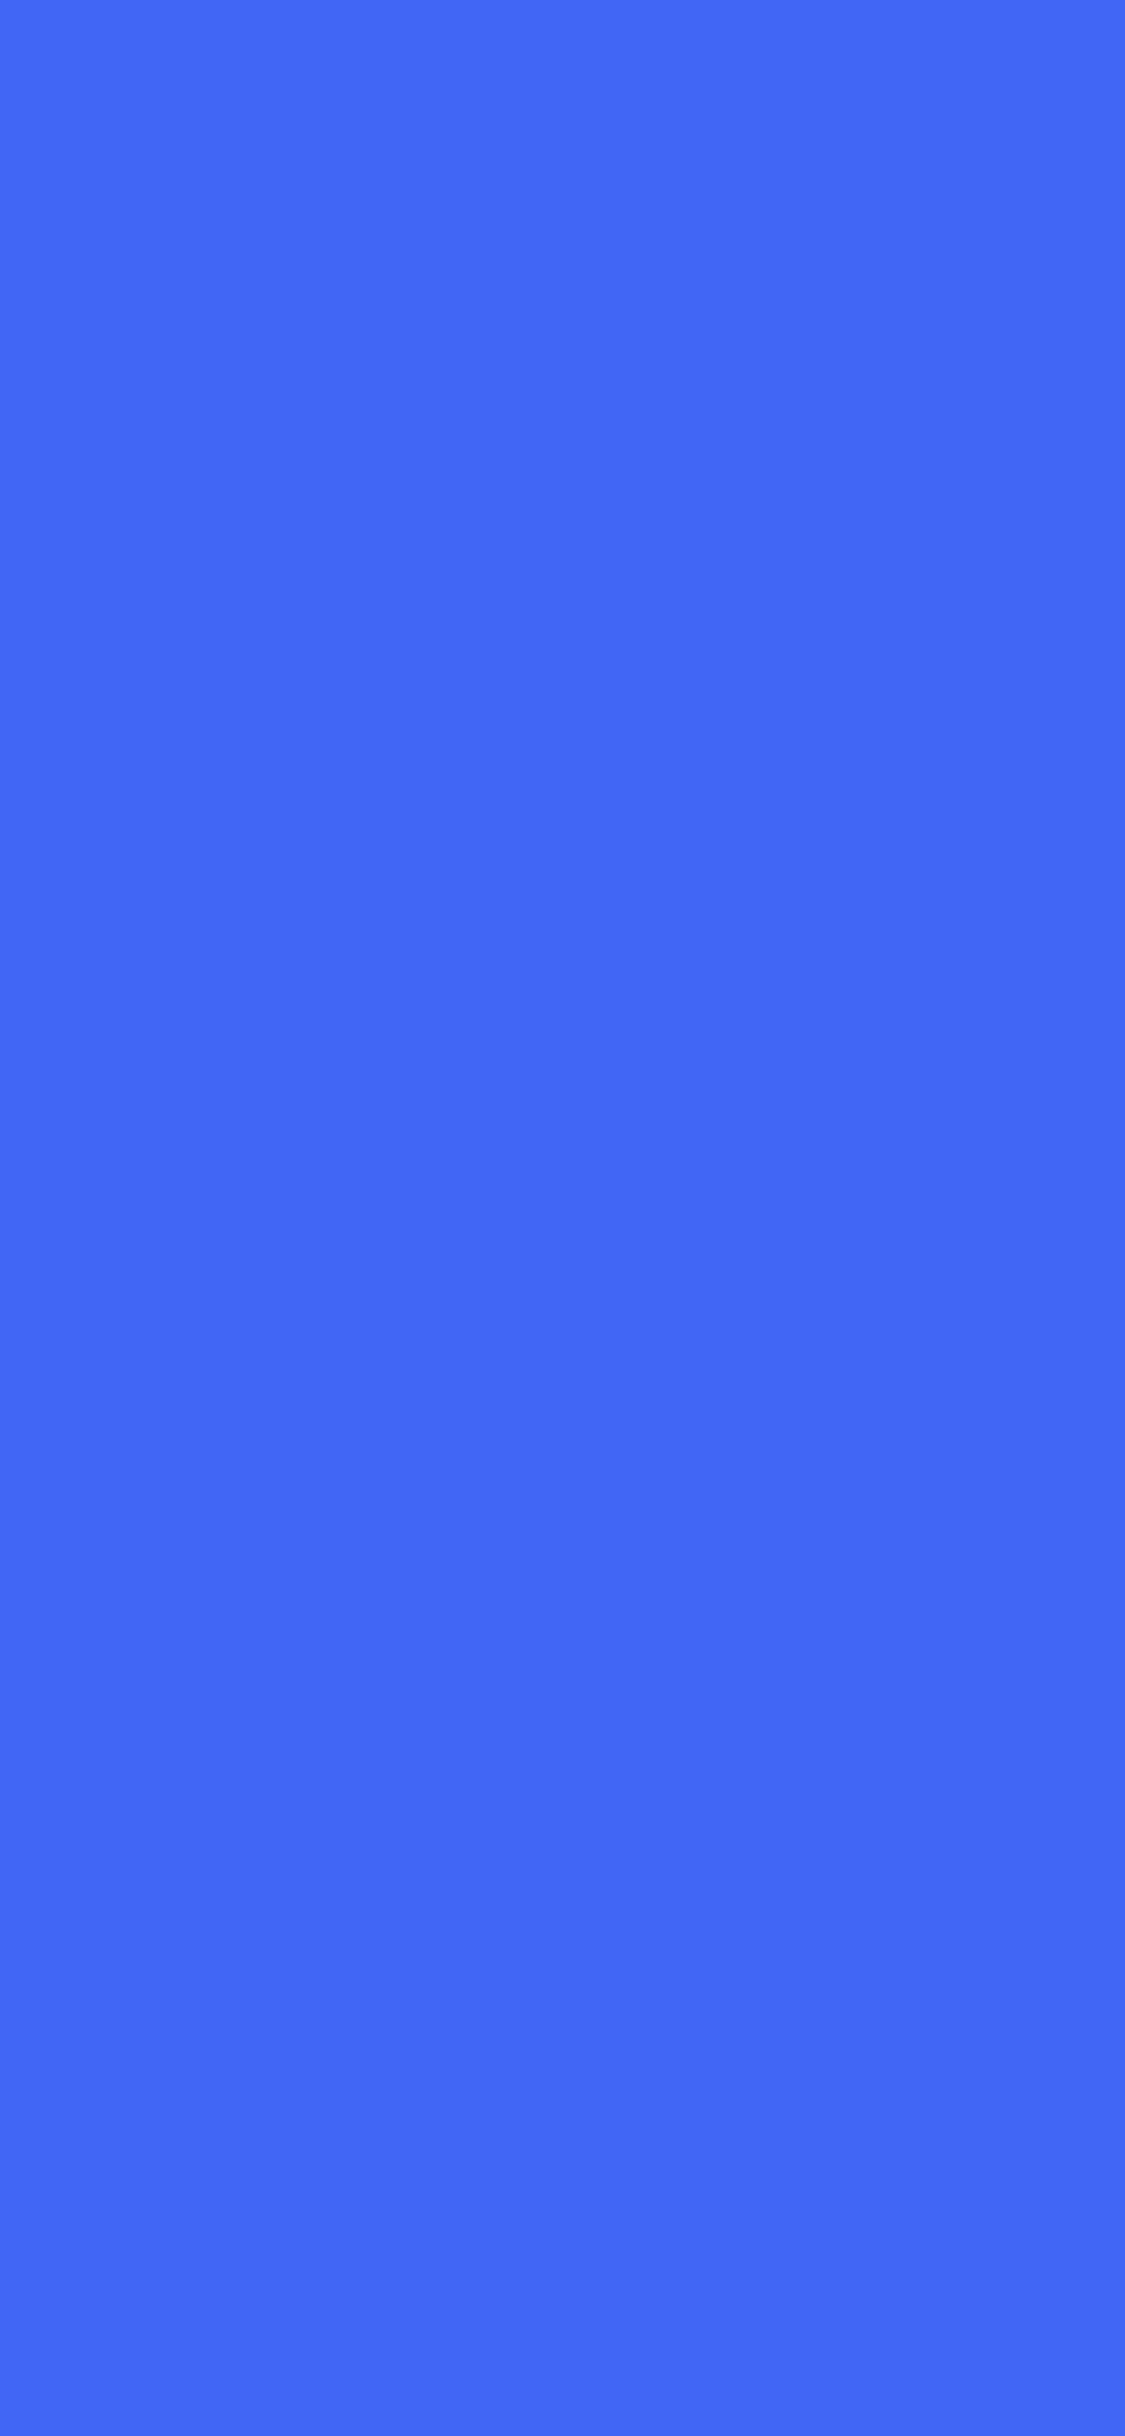 1125x2436 Ultramarine Blue Solid Color Background